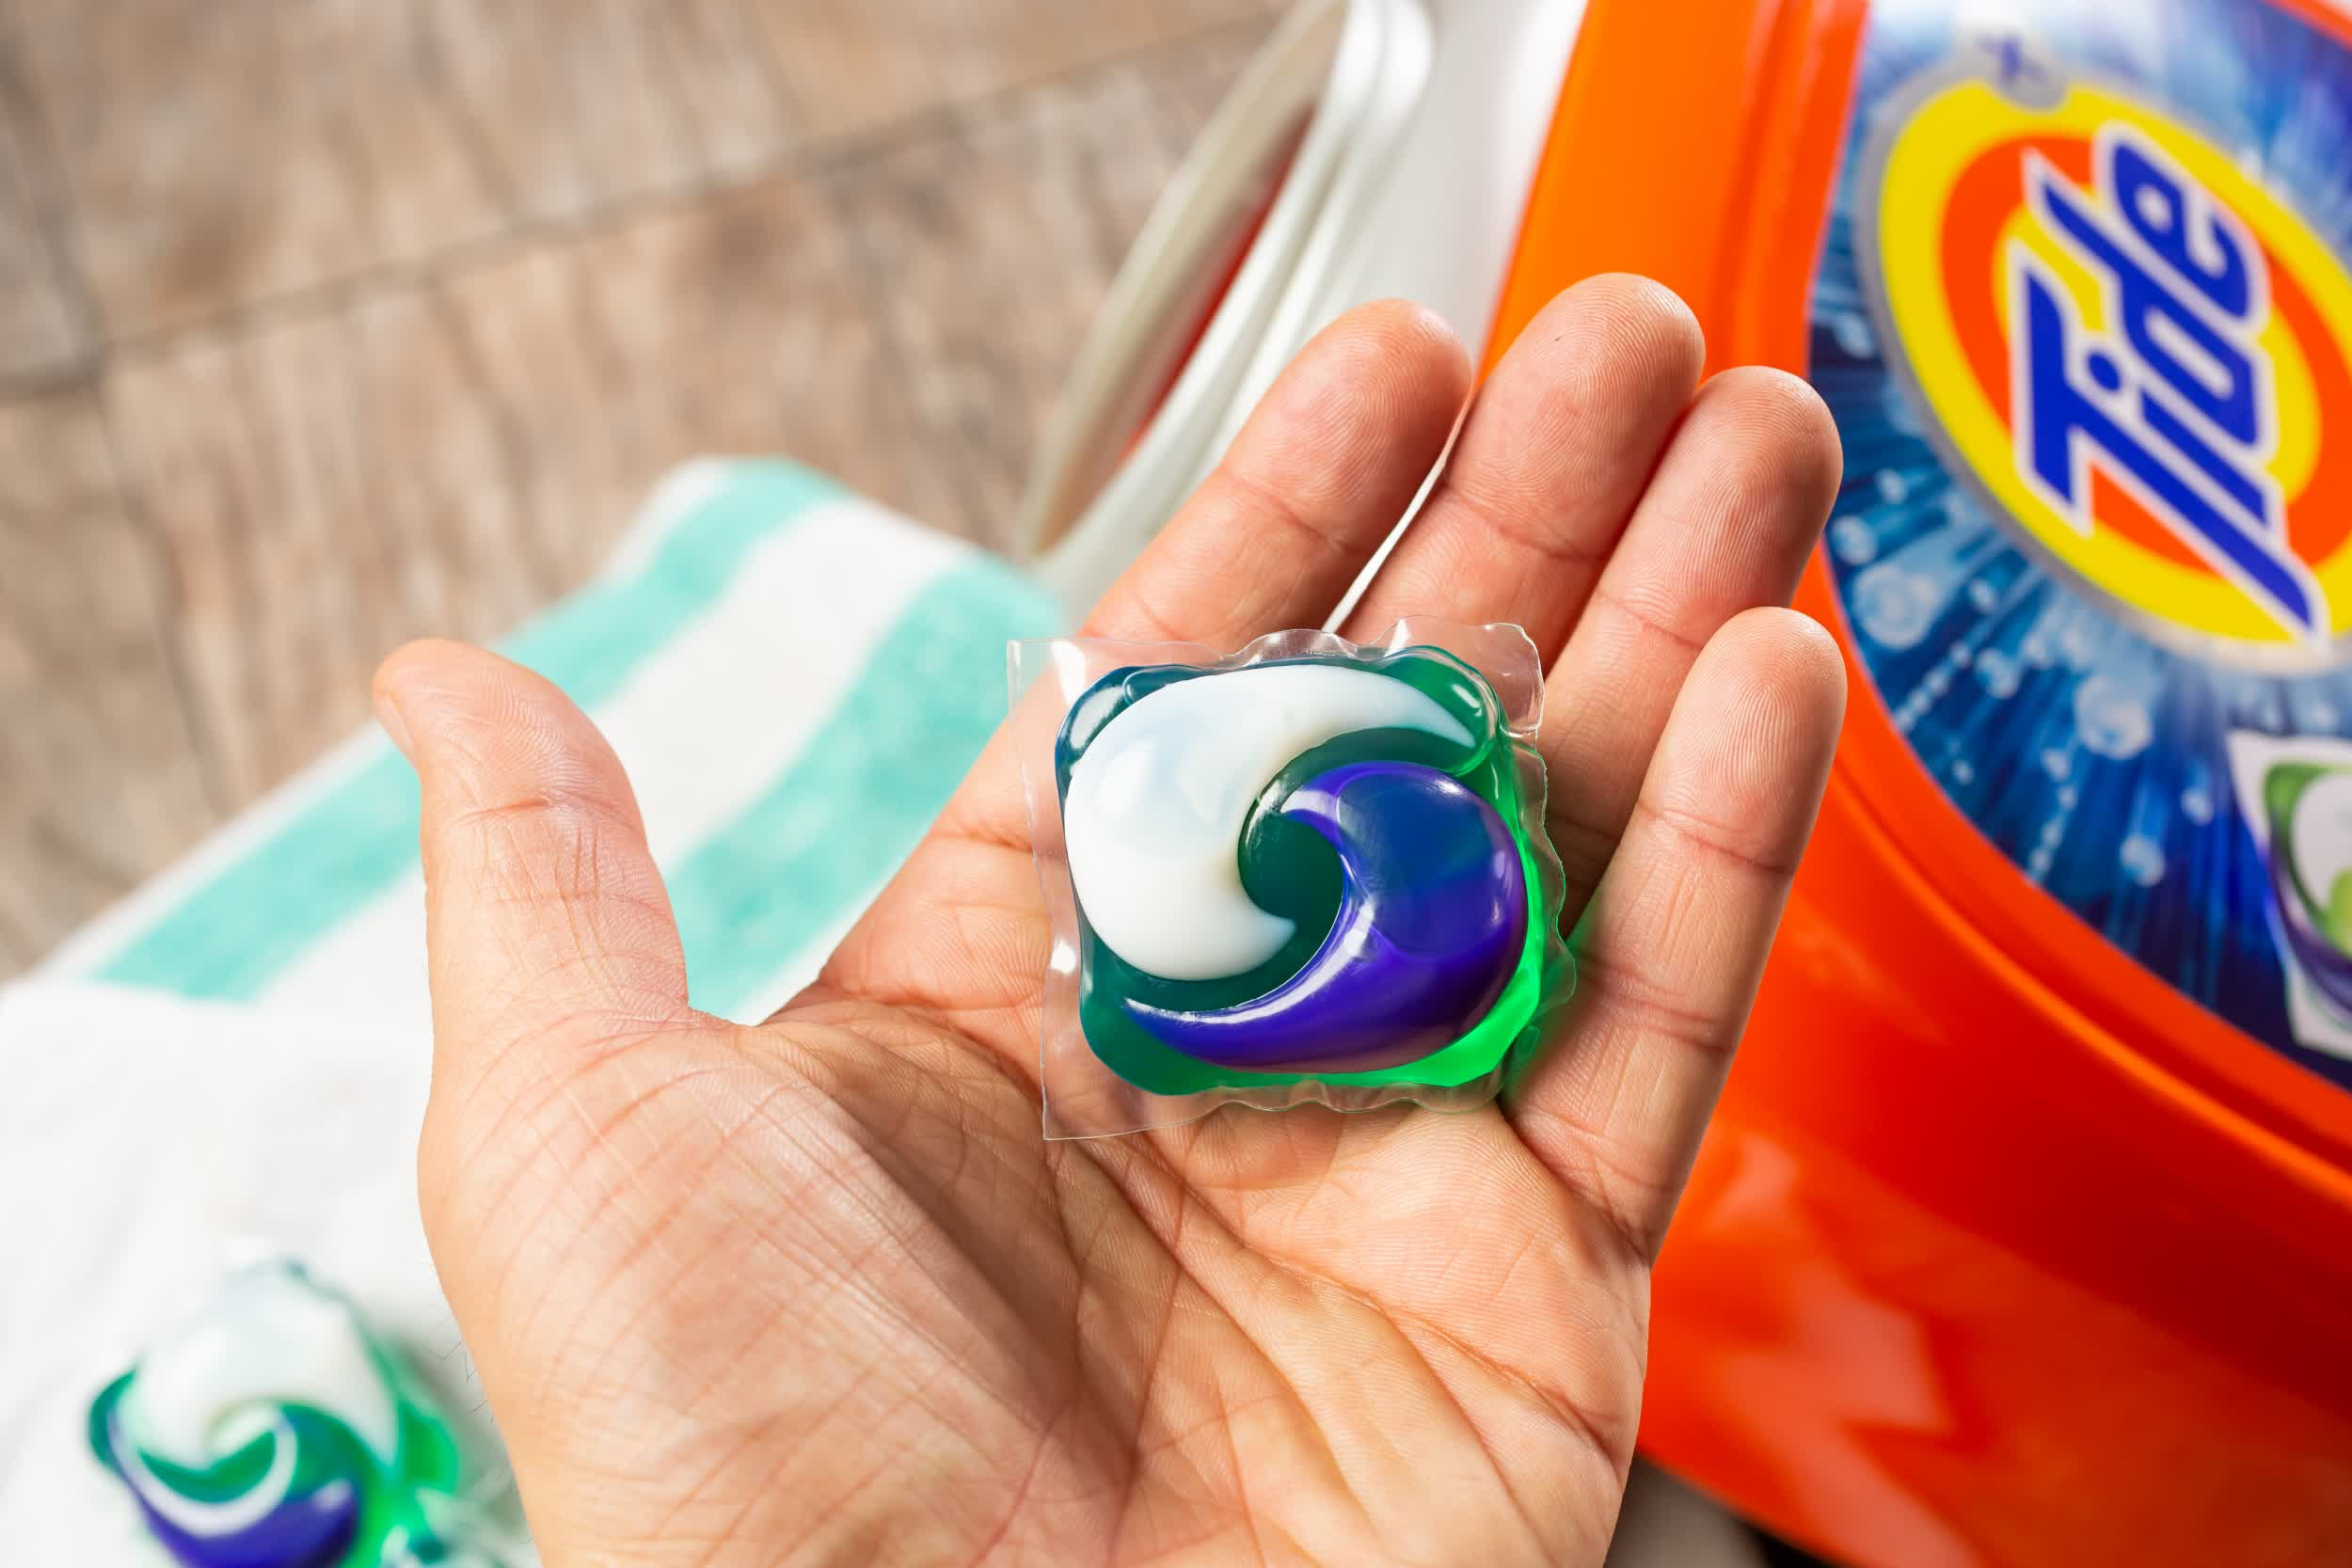 NASA teams with Tide to develop laundry detergent for use in space